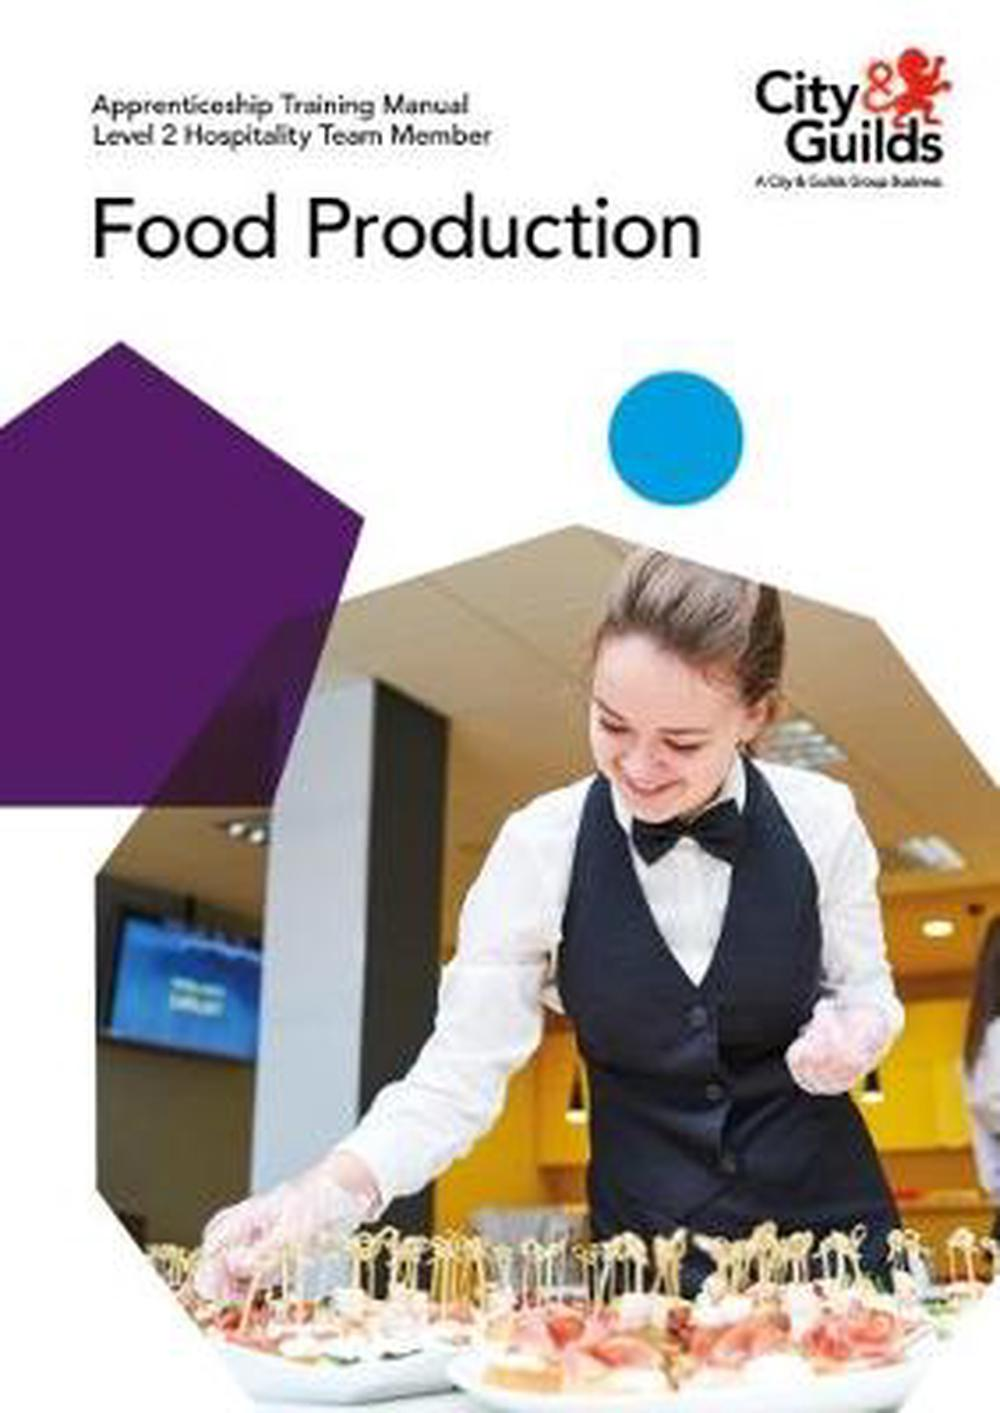 Level 2 Hospitality Team Member - Food Production: Apprenticeship Training Manual